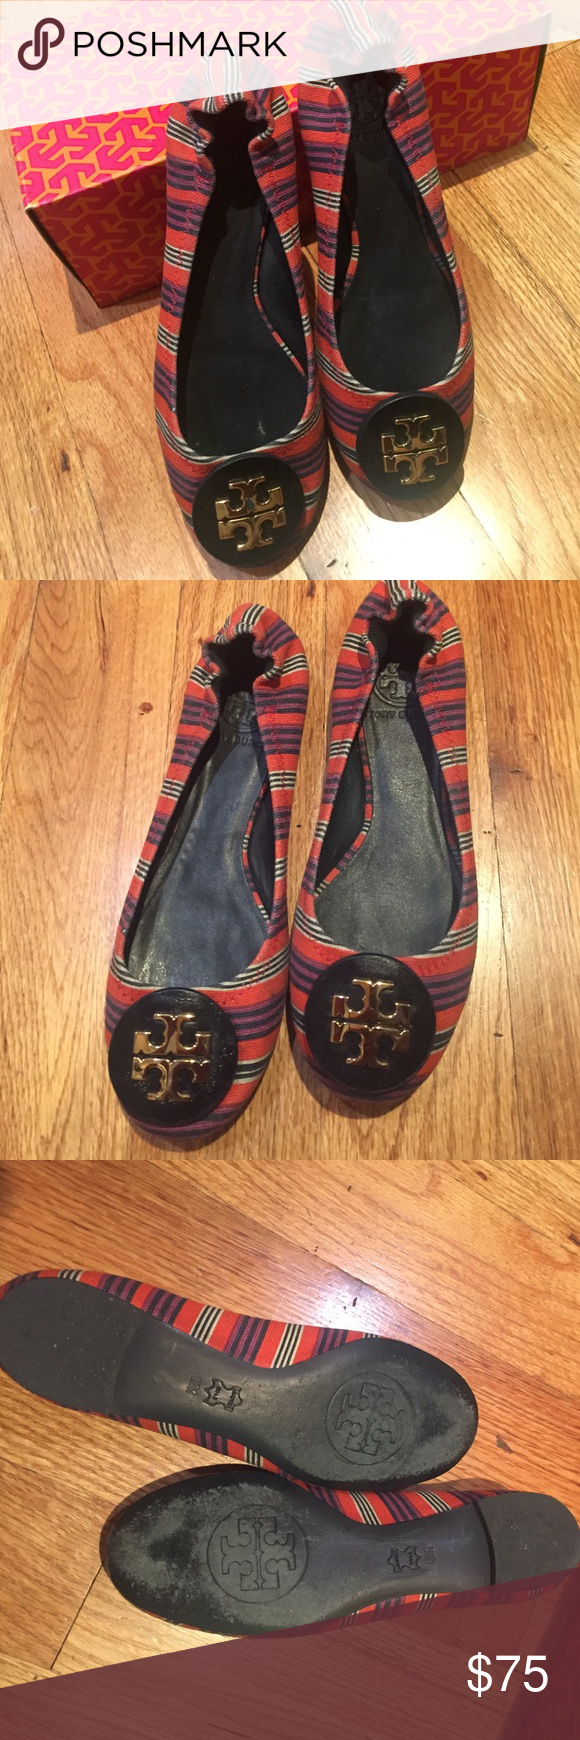 Tory Burch Ballet Flats Updated in rich printed multicolored canvas canvas, with a non-elastic back, and finished with a signature gold double-T logo, this slip-on-and-go style is the epitome of effortless chic. Lightly worn 3x's mint condition. Tory Burch Shoes Flats & Loafers